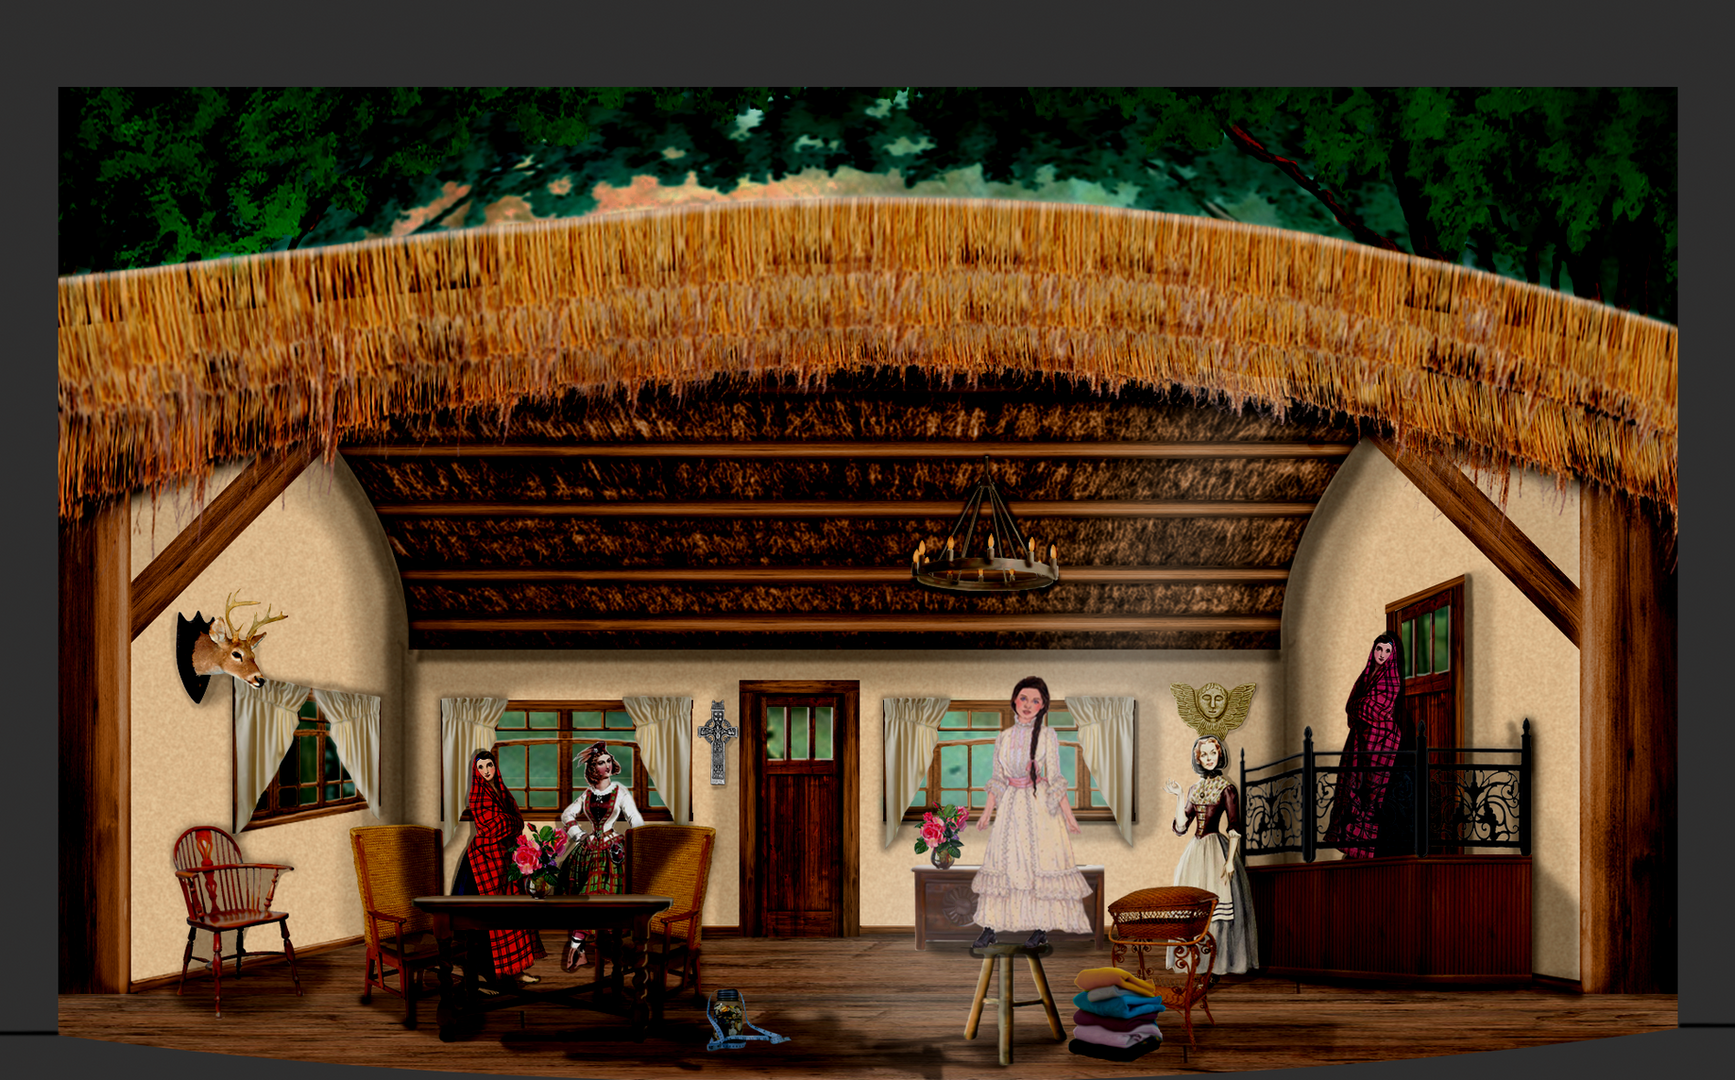 Jeanie's Packing Up, Brigadoon Photoshop Rendering